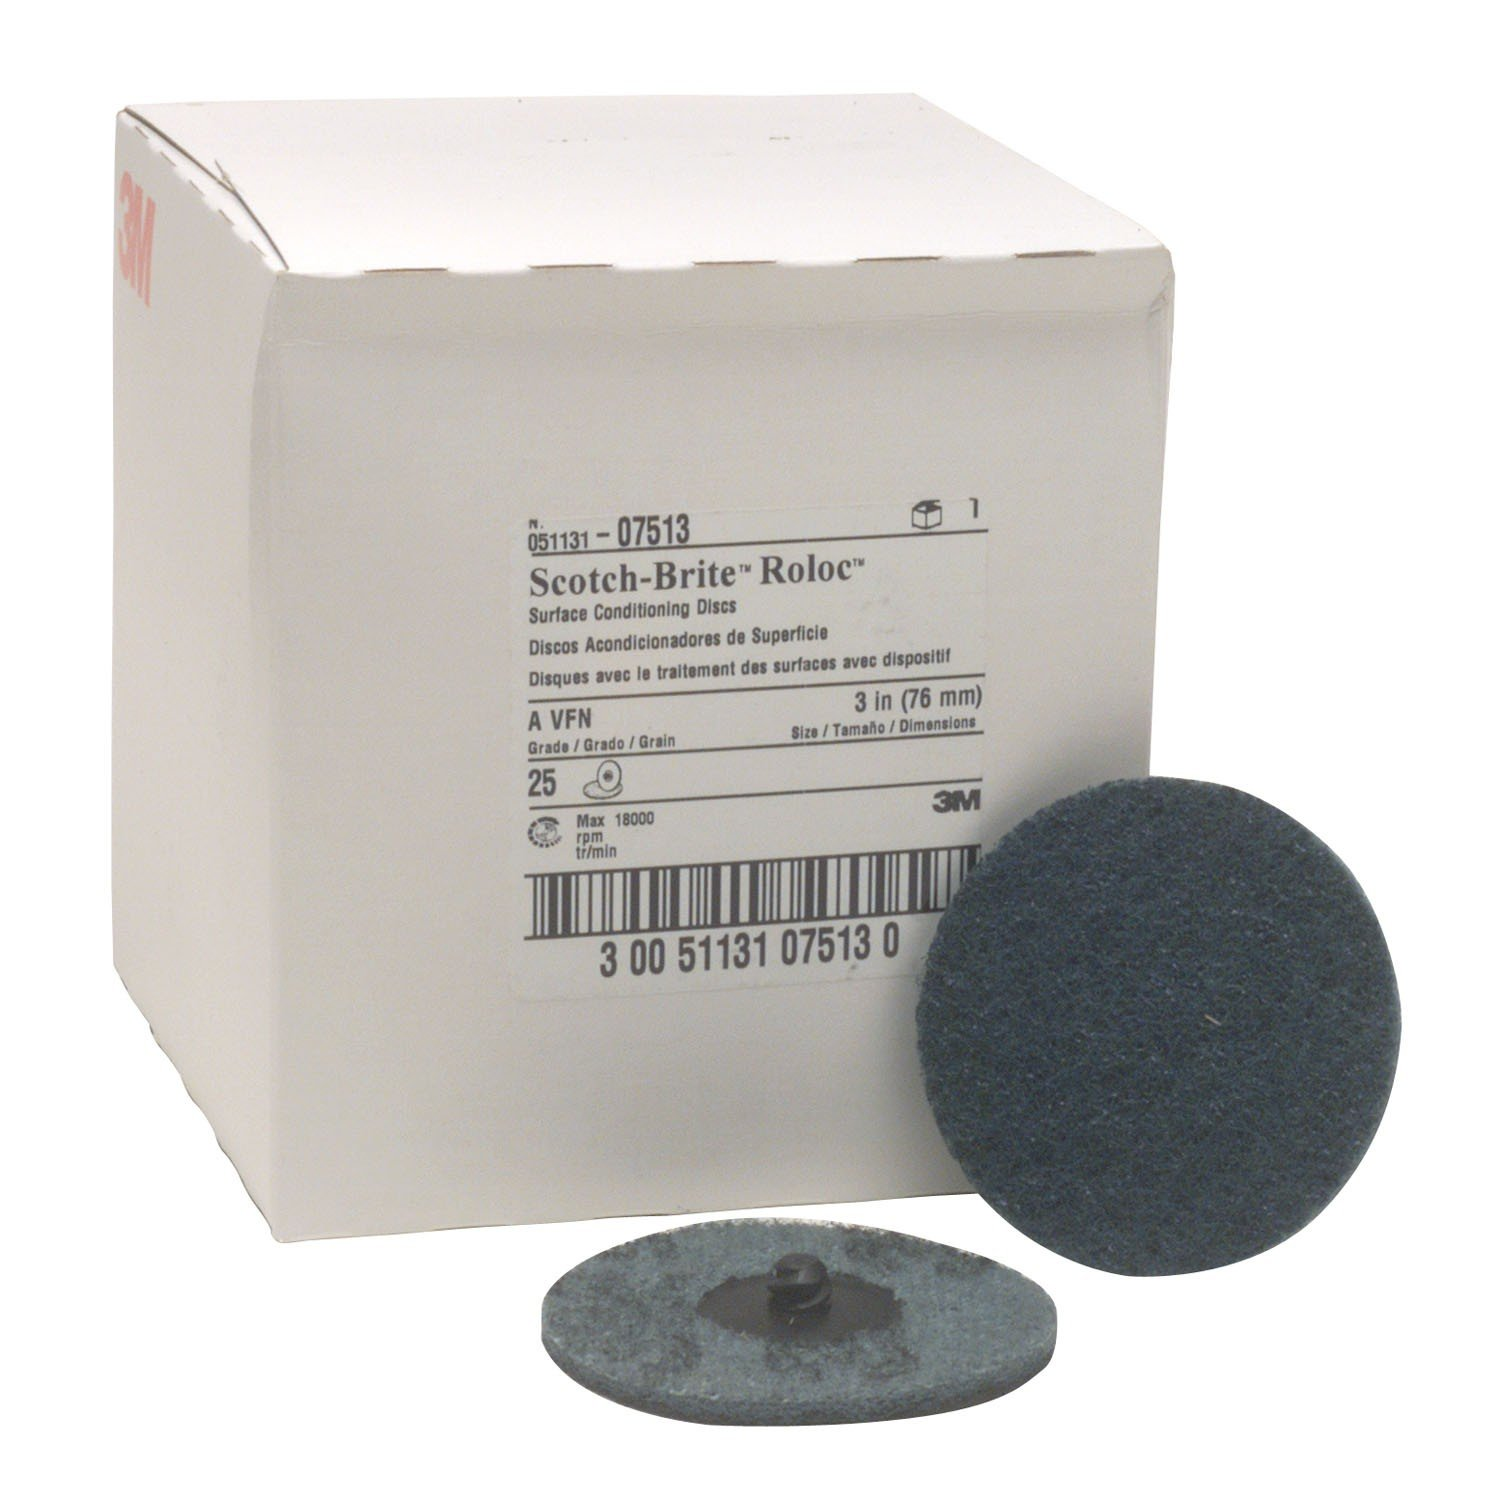 Scotch-Brite Roloc Surface Conditioning Disc, Very Fine grit, 3 in, 07513 (25/Pack)